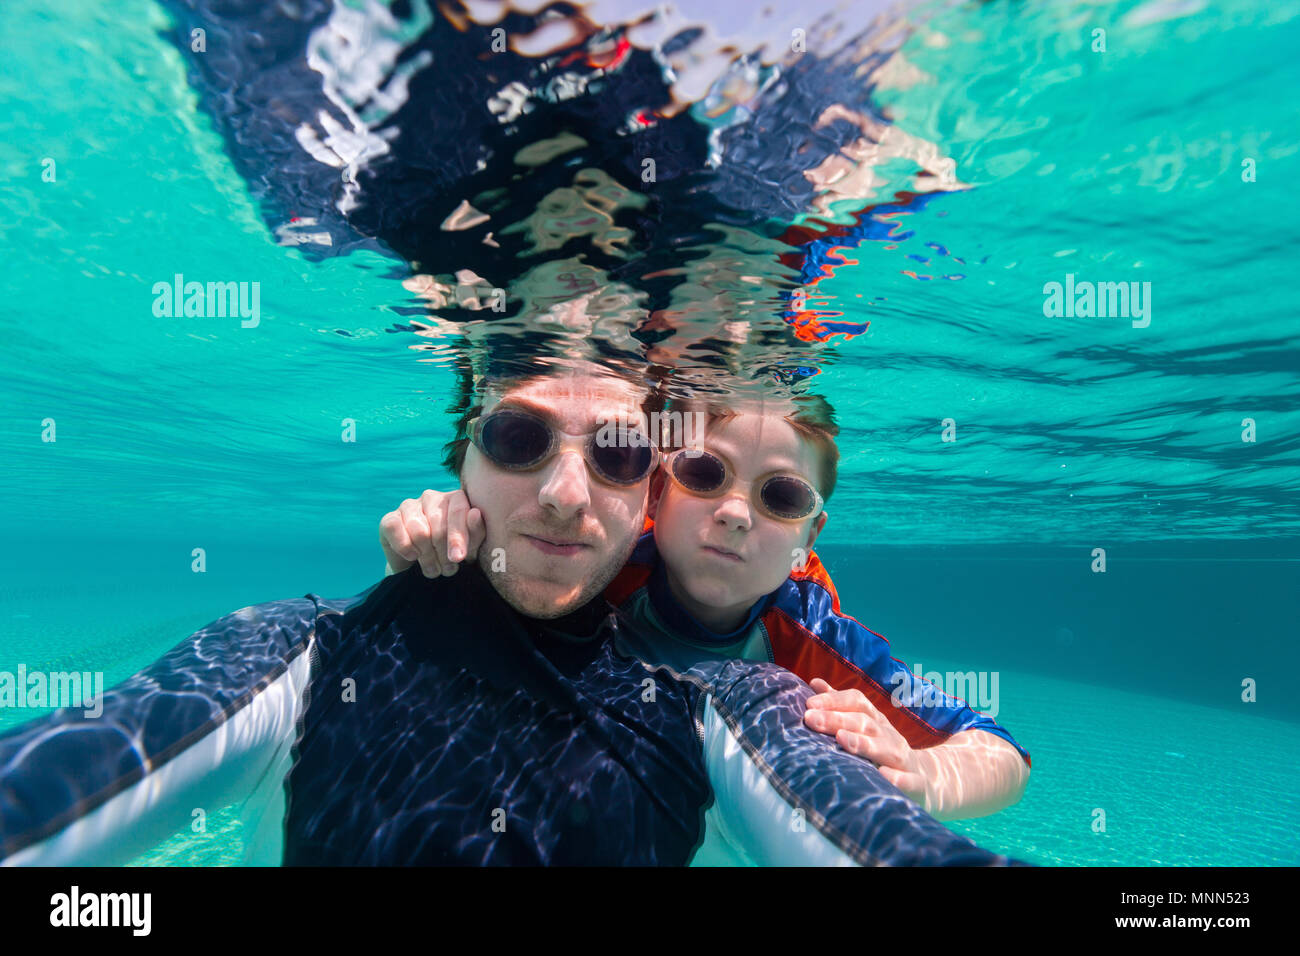 Father and son swimming underwater and making selfie - Stock Image